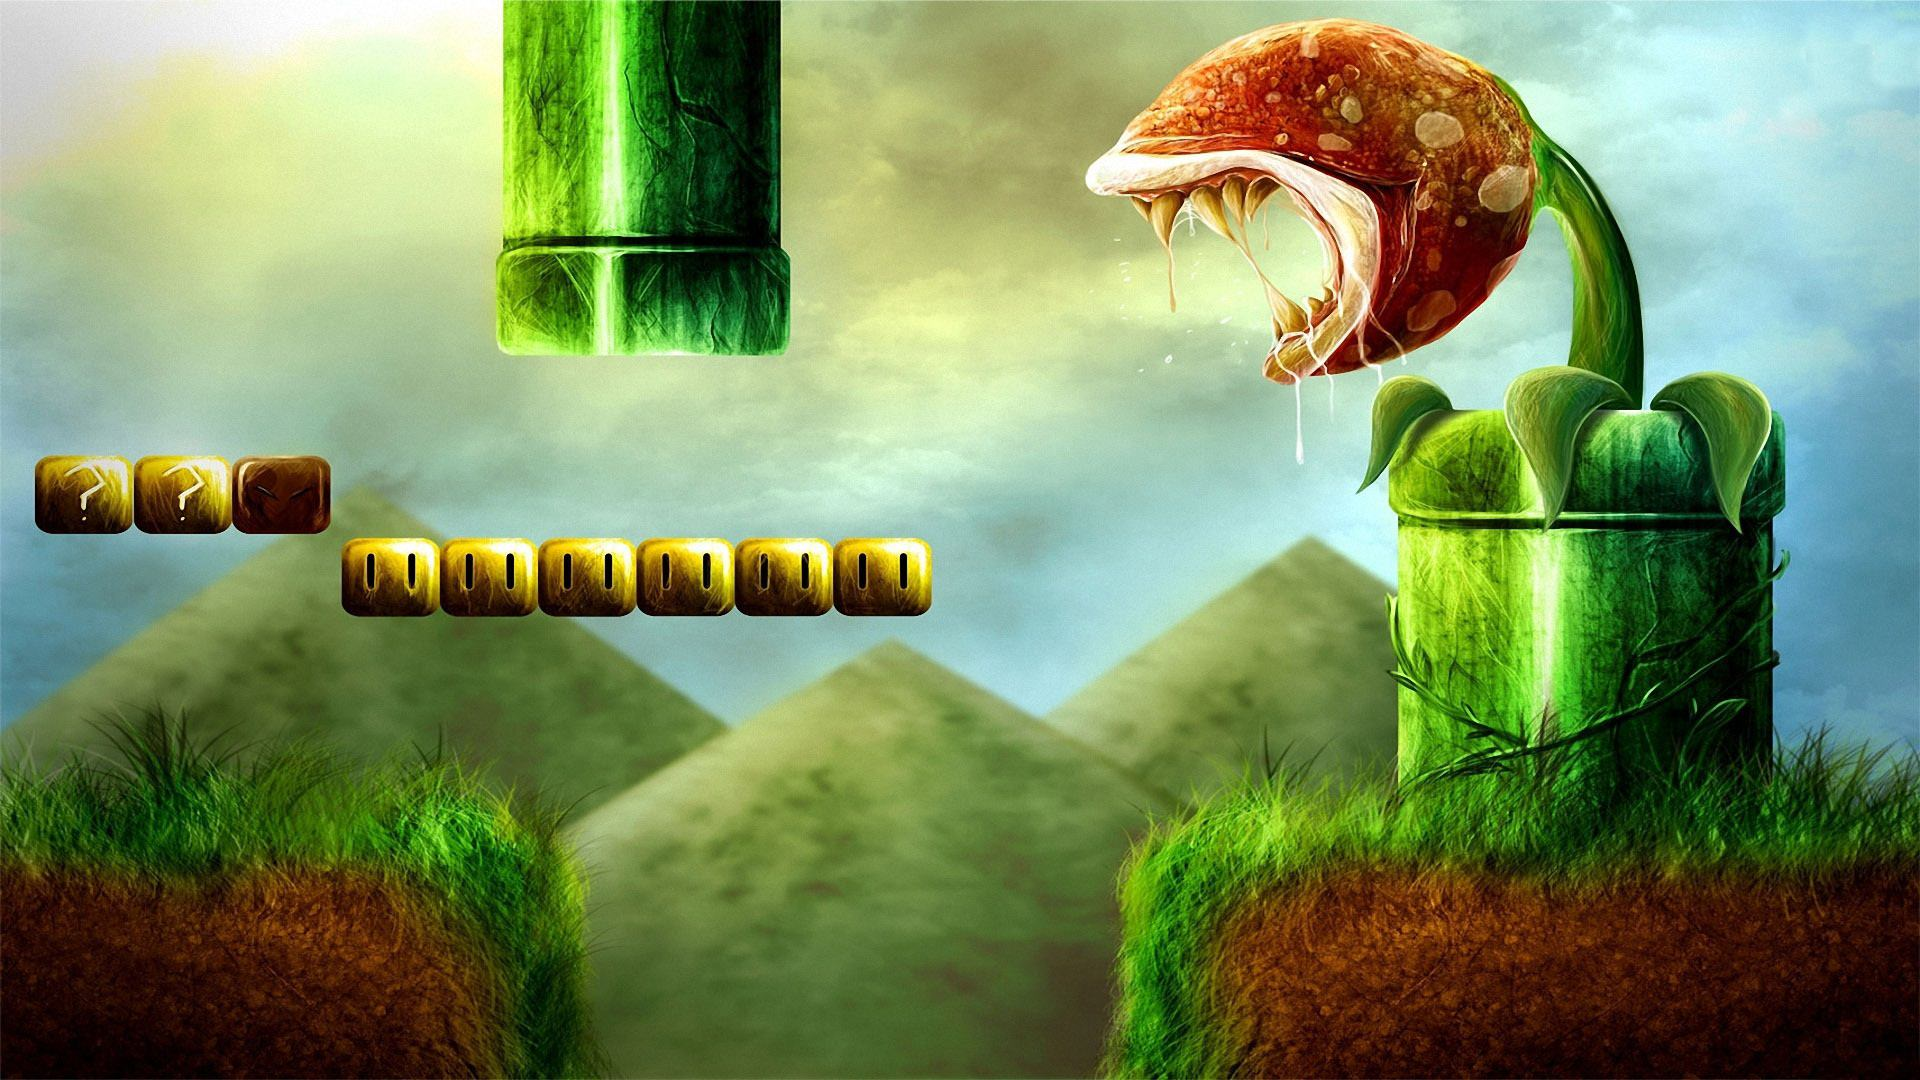 Super-mario-hq-new-hd-wallpaper-free-cool